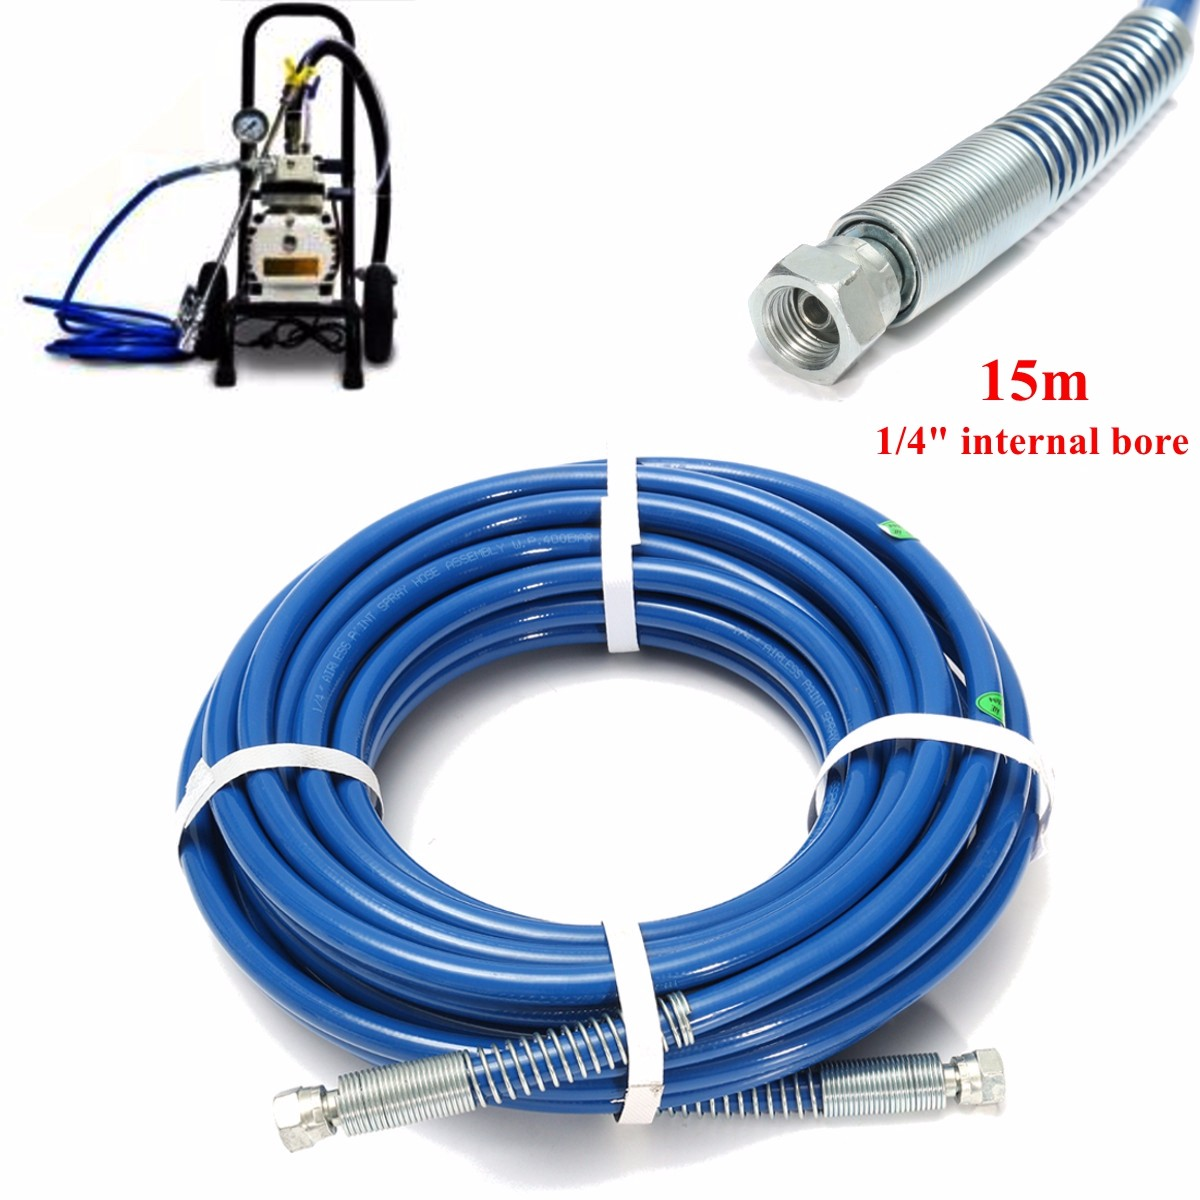 1pcs 15m 1/4'' High Pressure Airless Paint Spray Hose Sprayer Tube 3300PSI Cleaning Painting Max